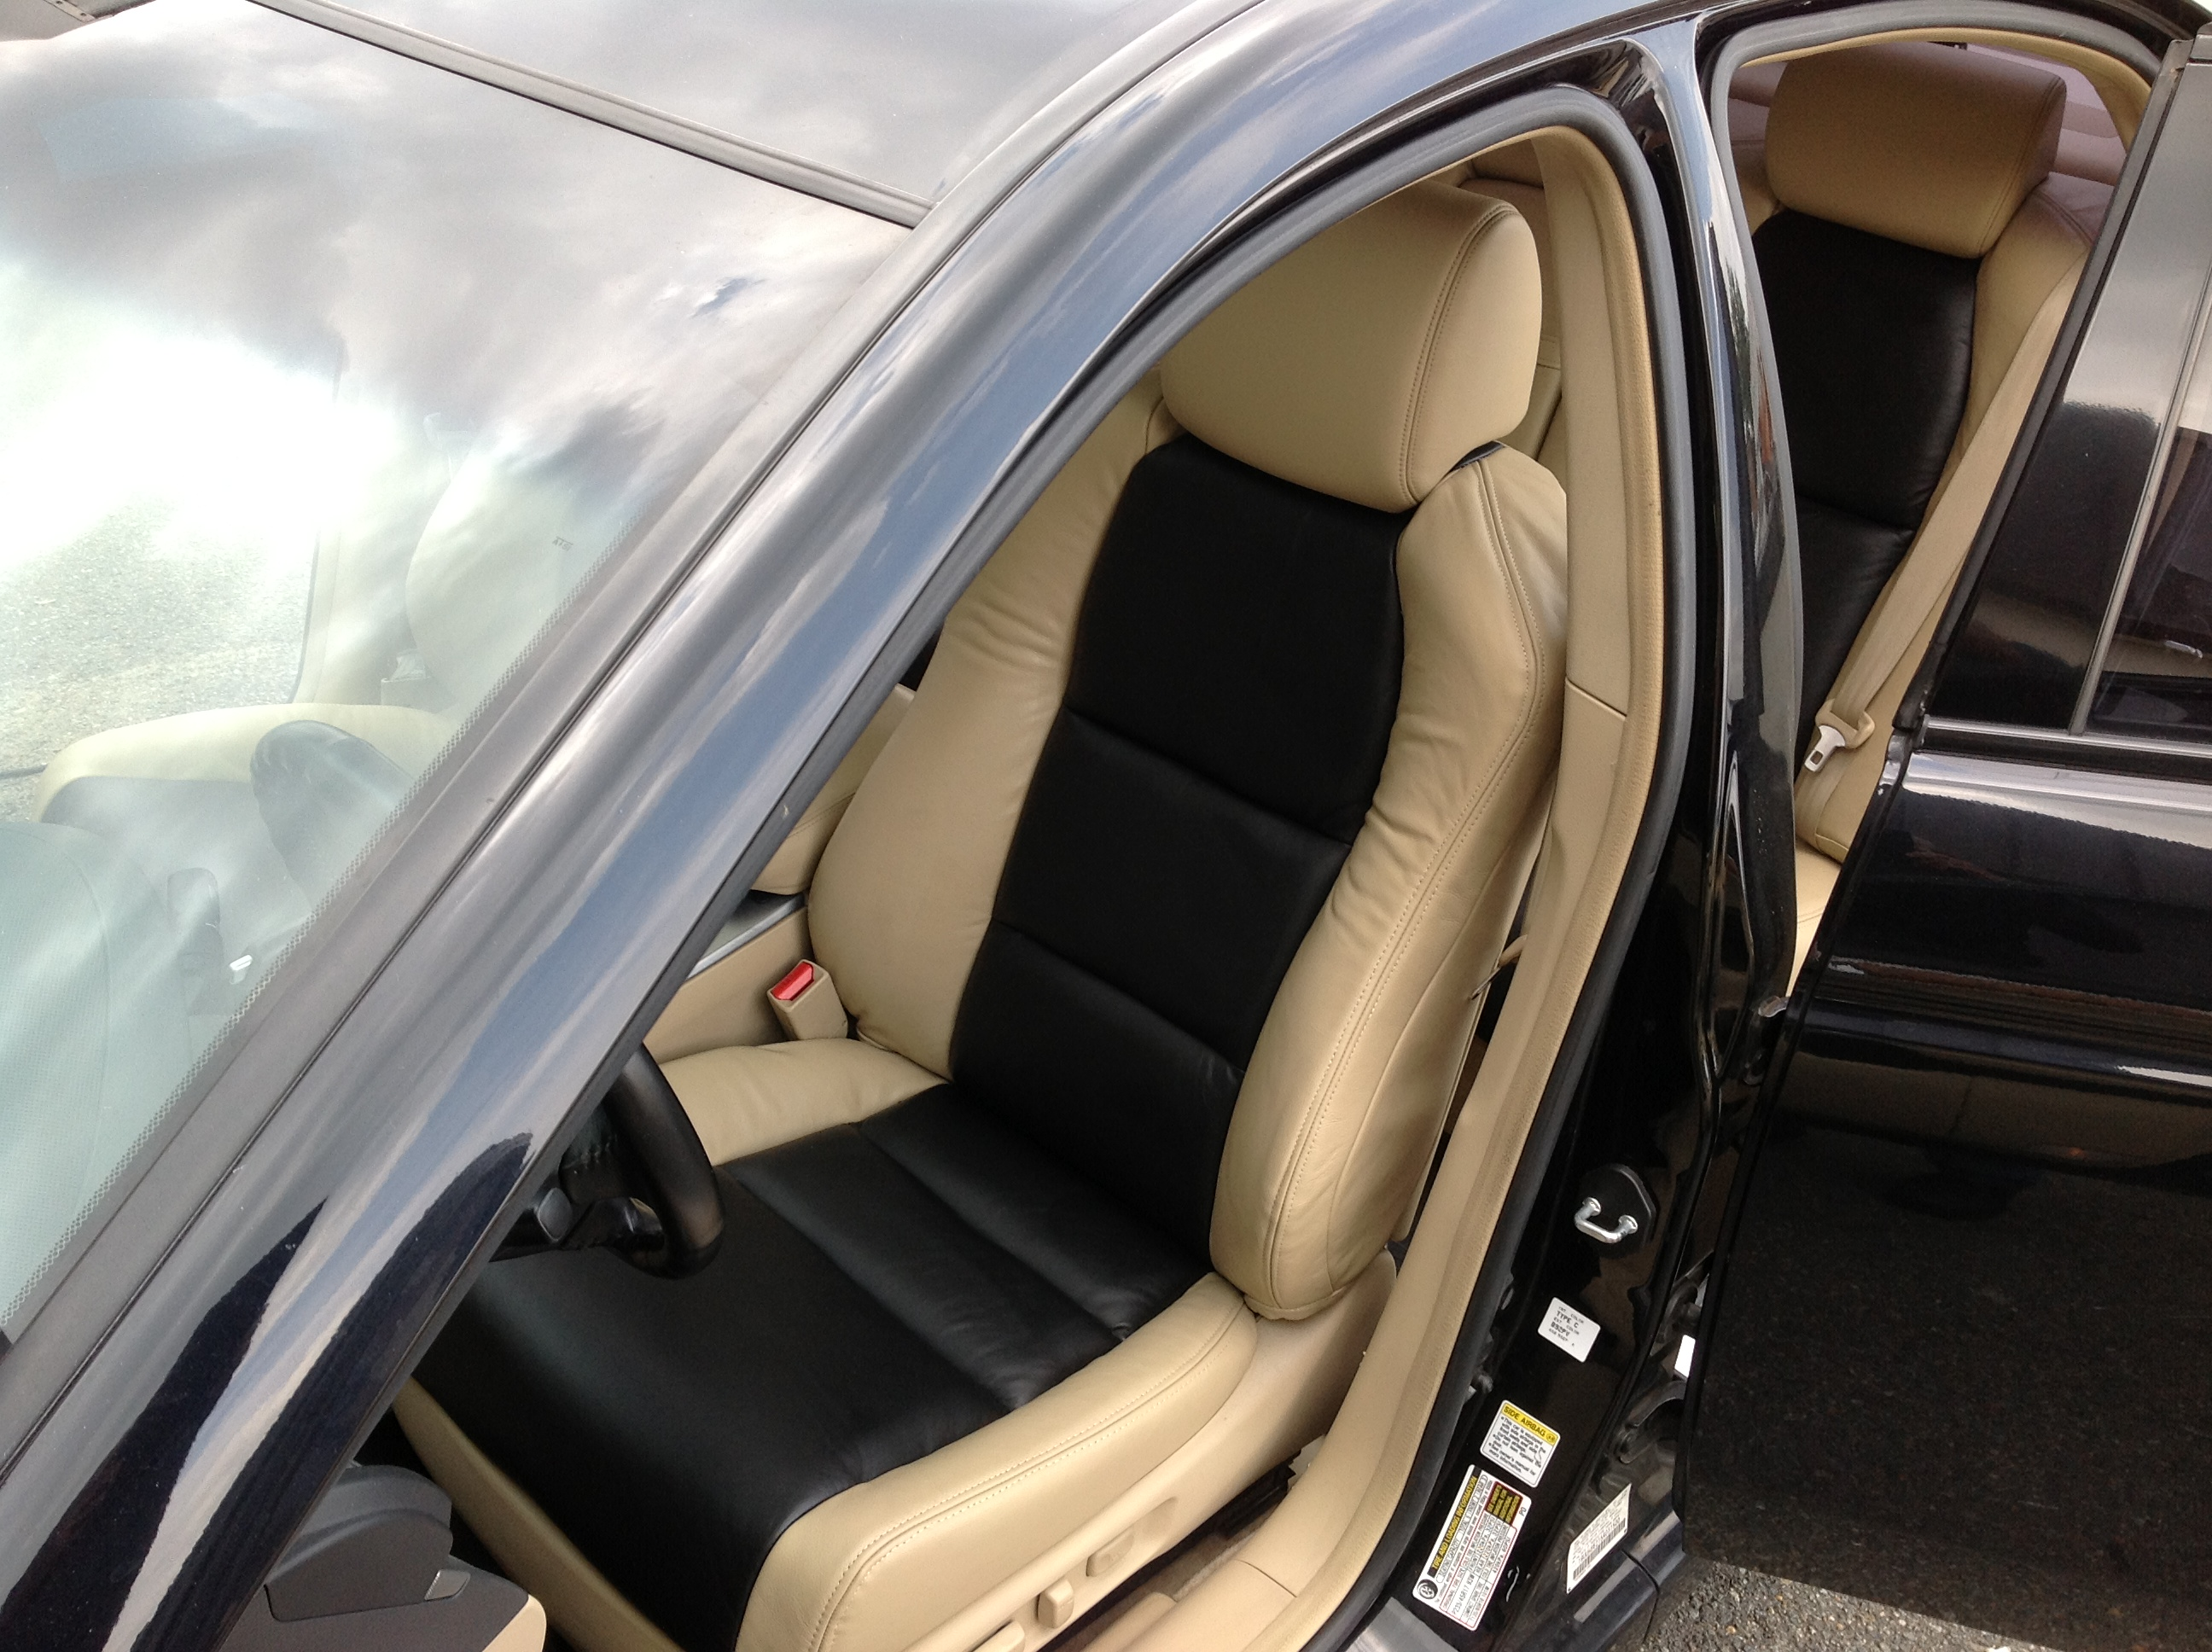 Acura tan n black front seat after2 (2014_07_21 05_41_10 UTC)